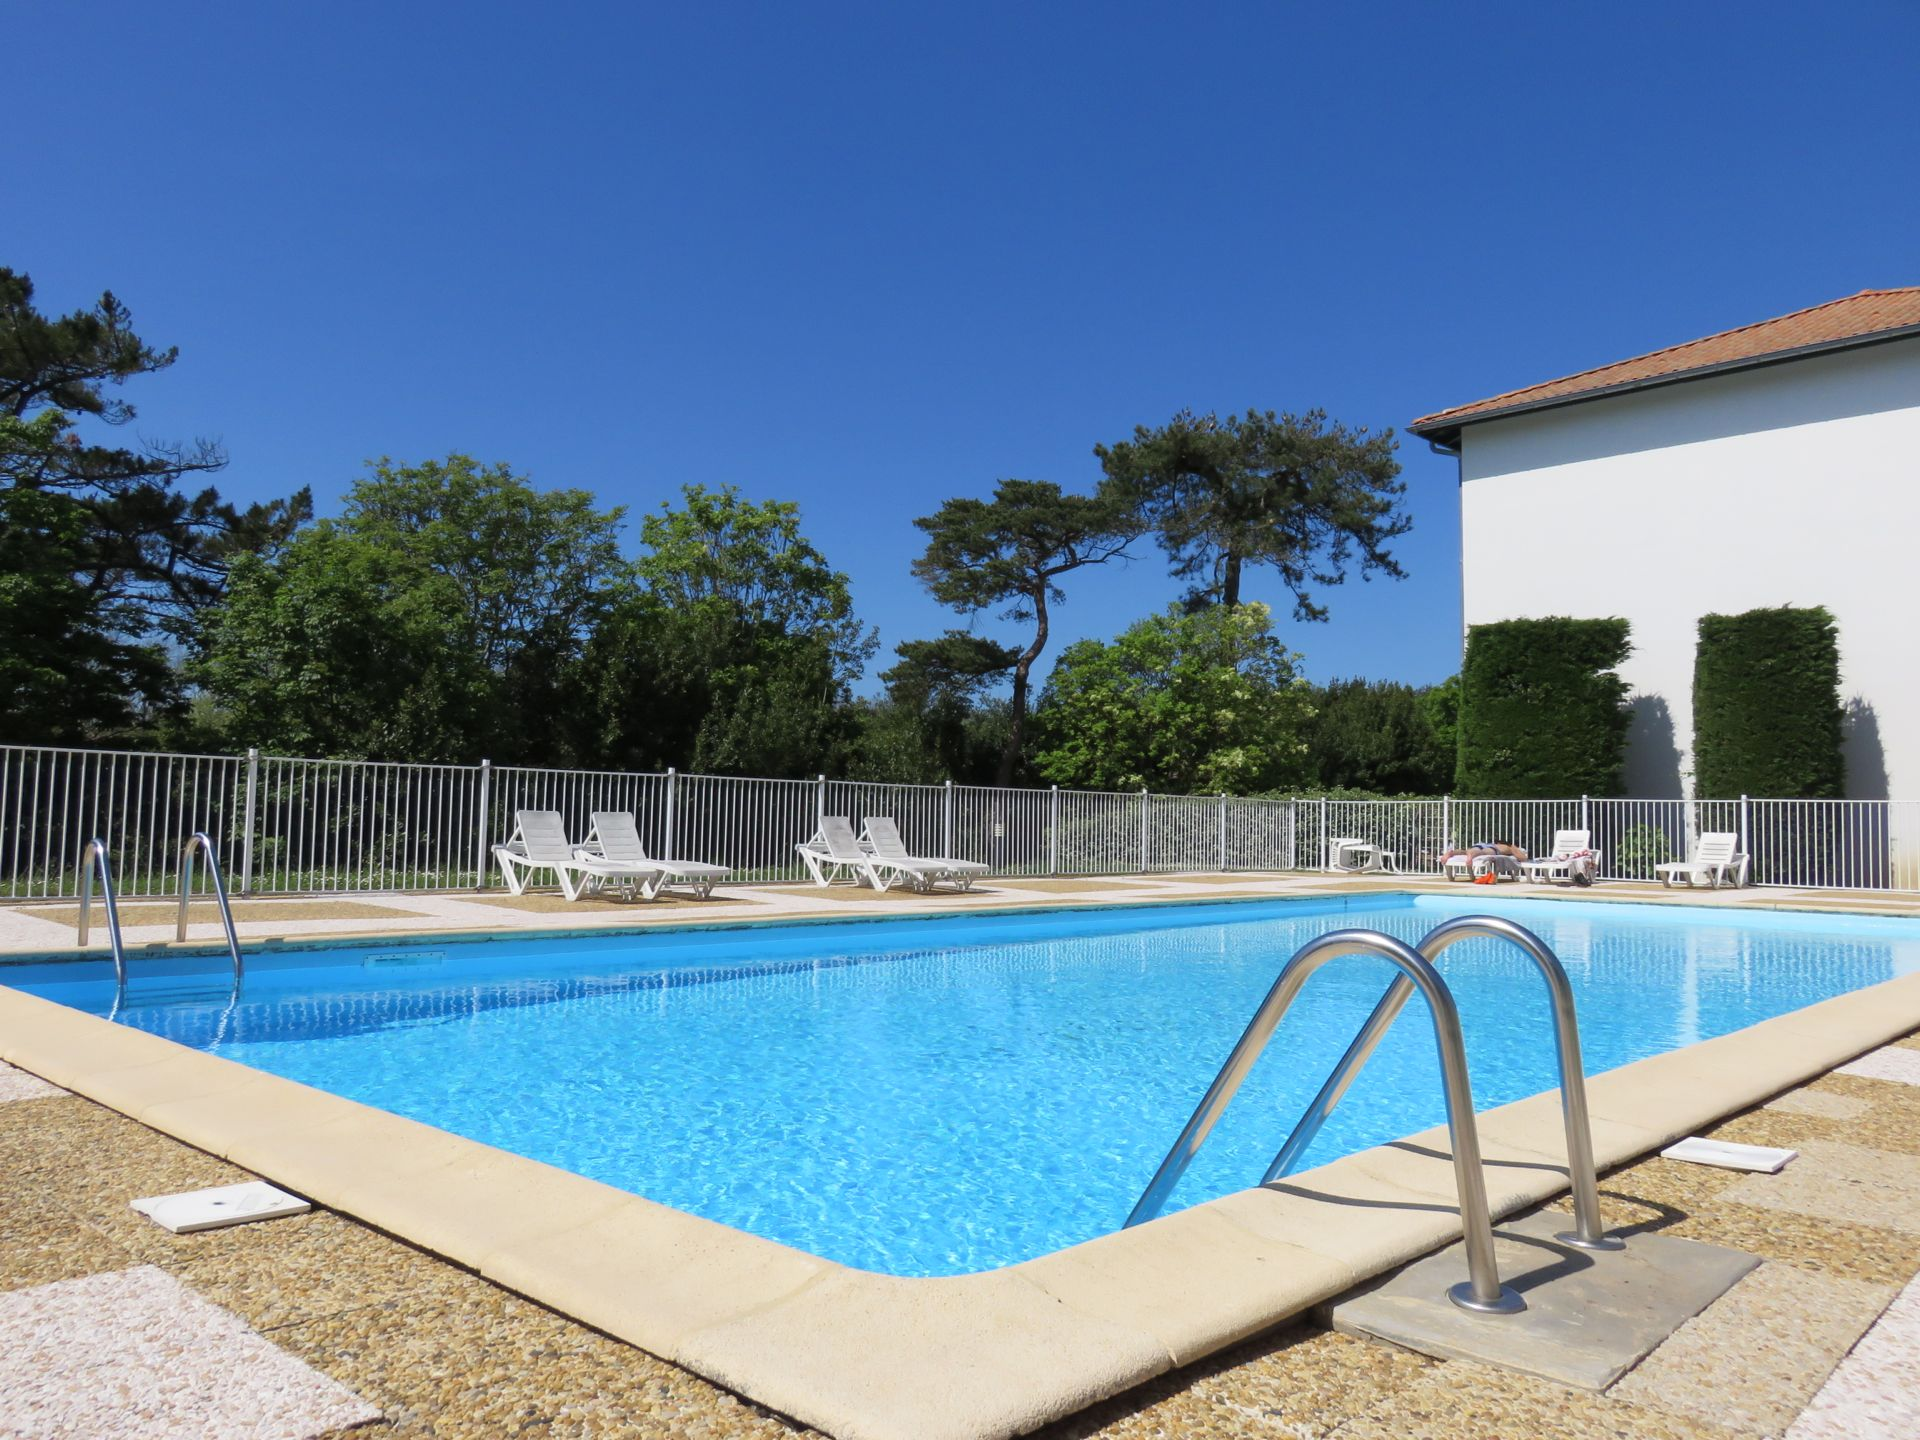 Location vacances promotion locations vacances location for Piscine jean bouin st quentin